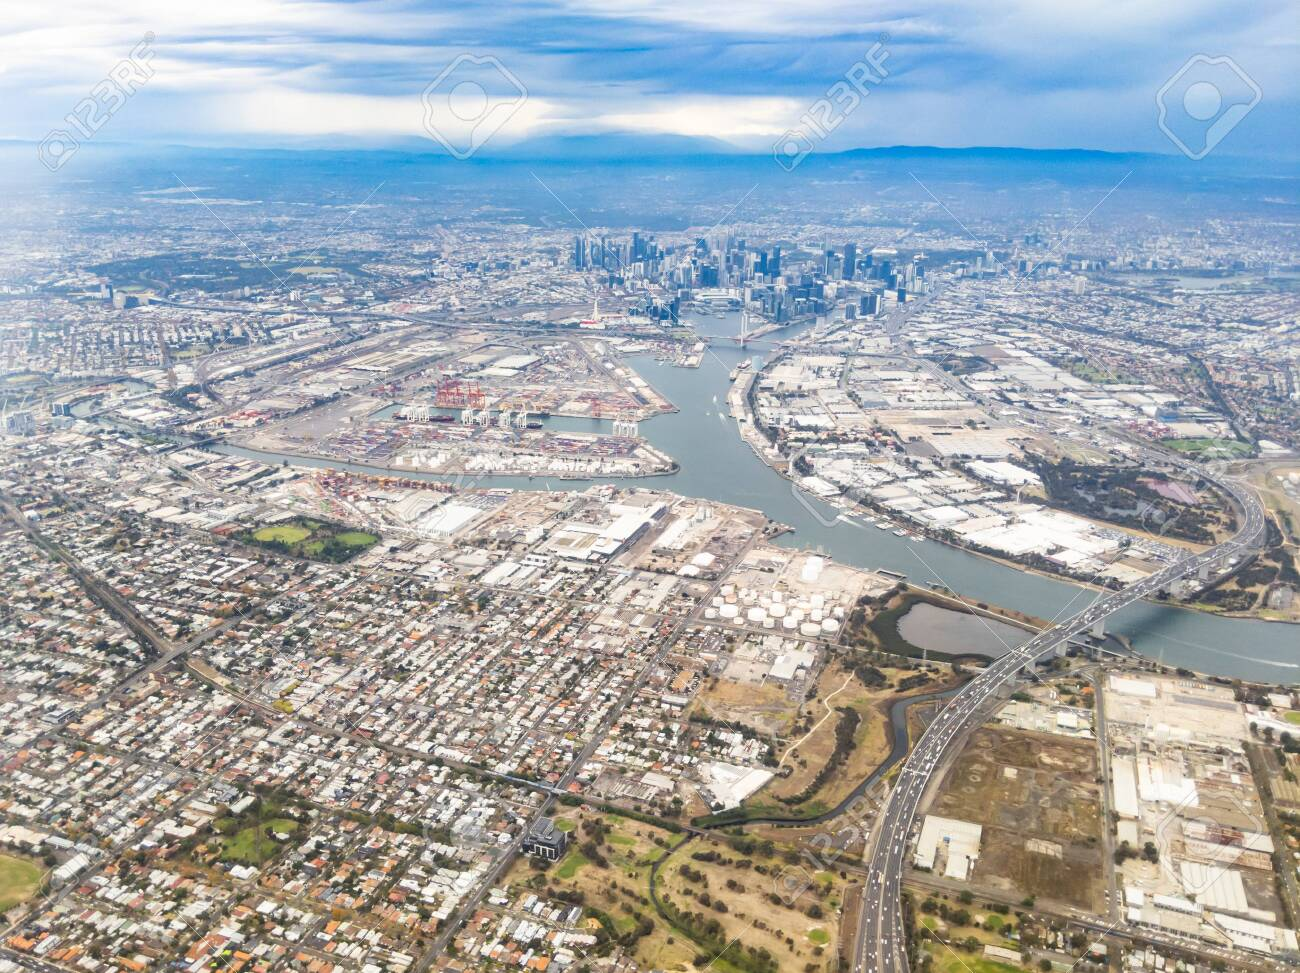 Aerial View Of Melbourne CBD On A Stormy Day Over Melbourne Australia Stock  Photo, Picture And Royalty Free Image. Image 124559360.